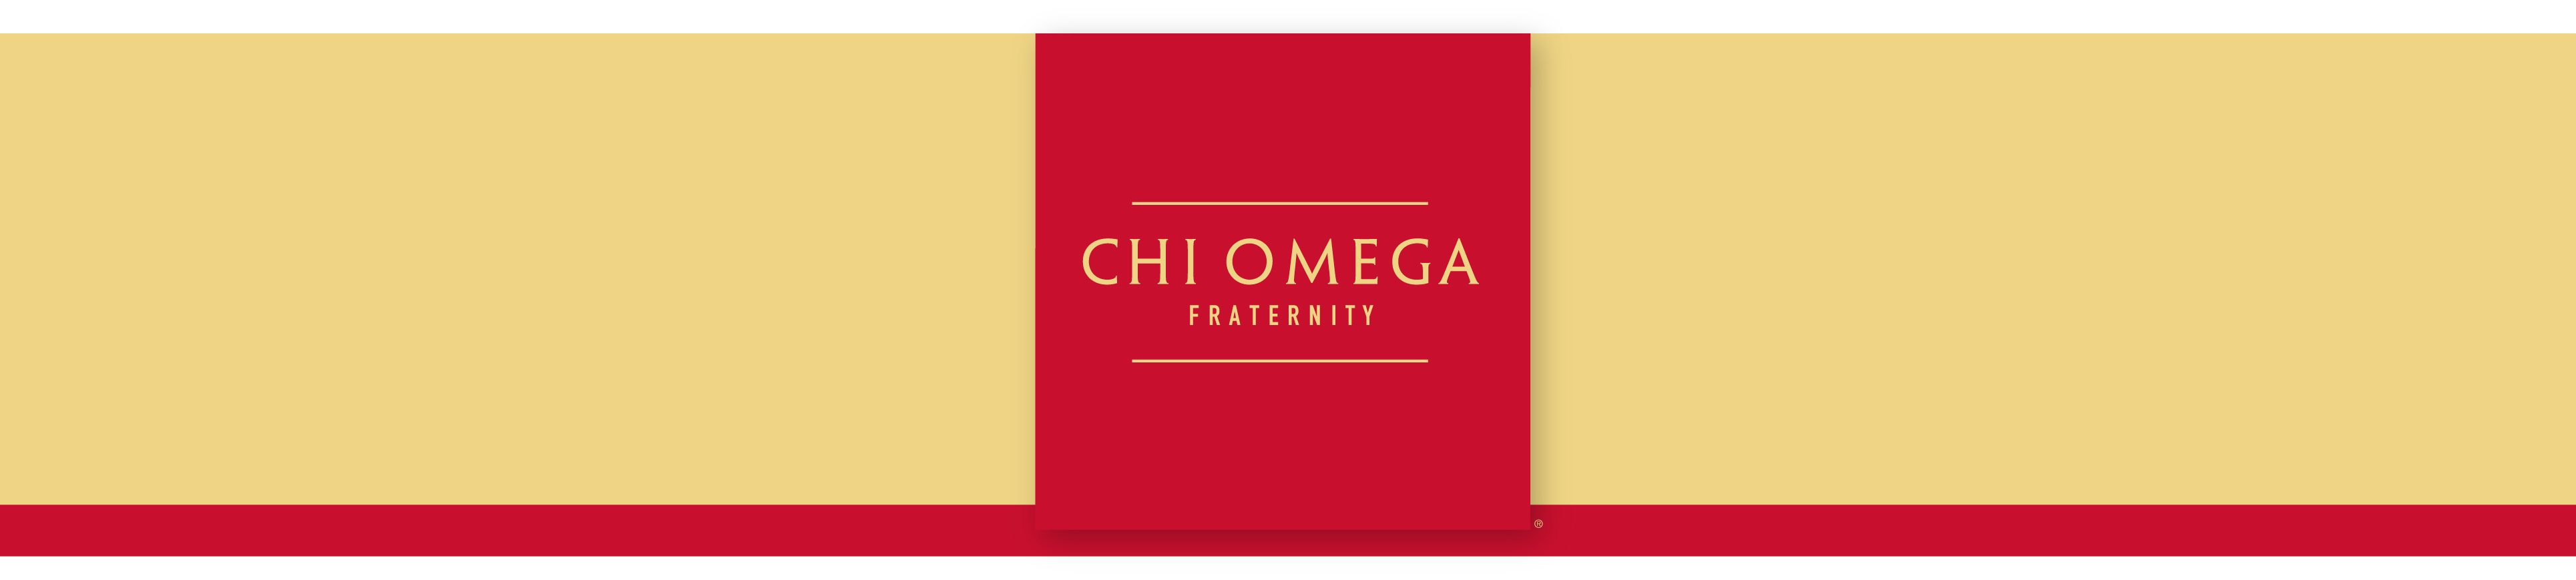 ChiO Email Banner_ChiO Fraternity